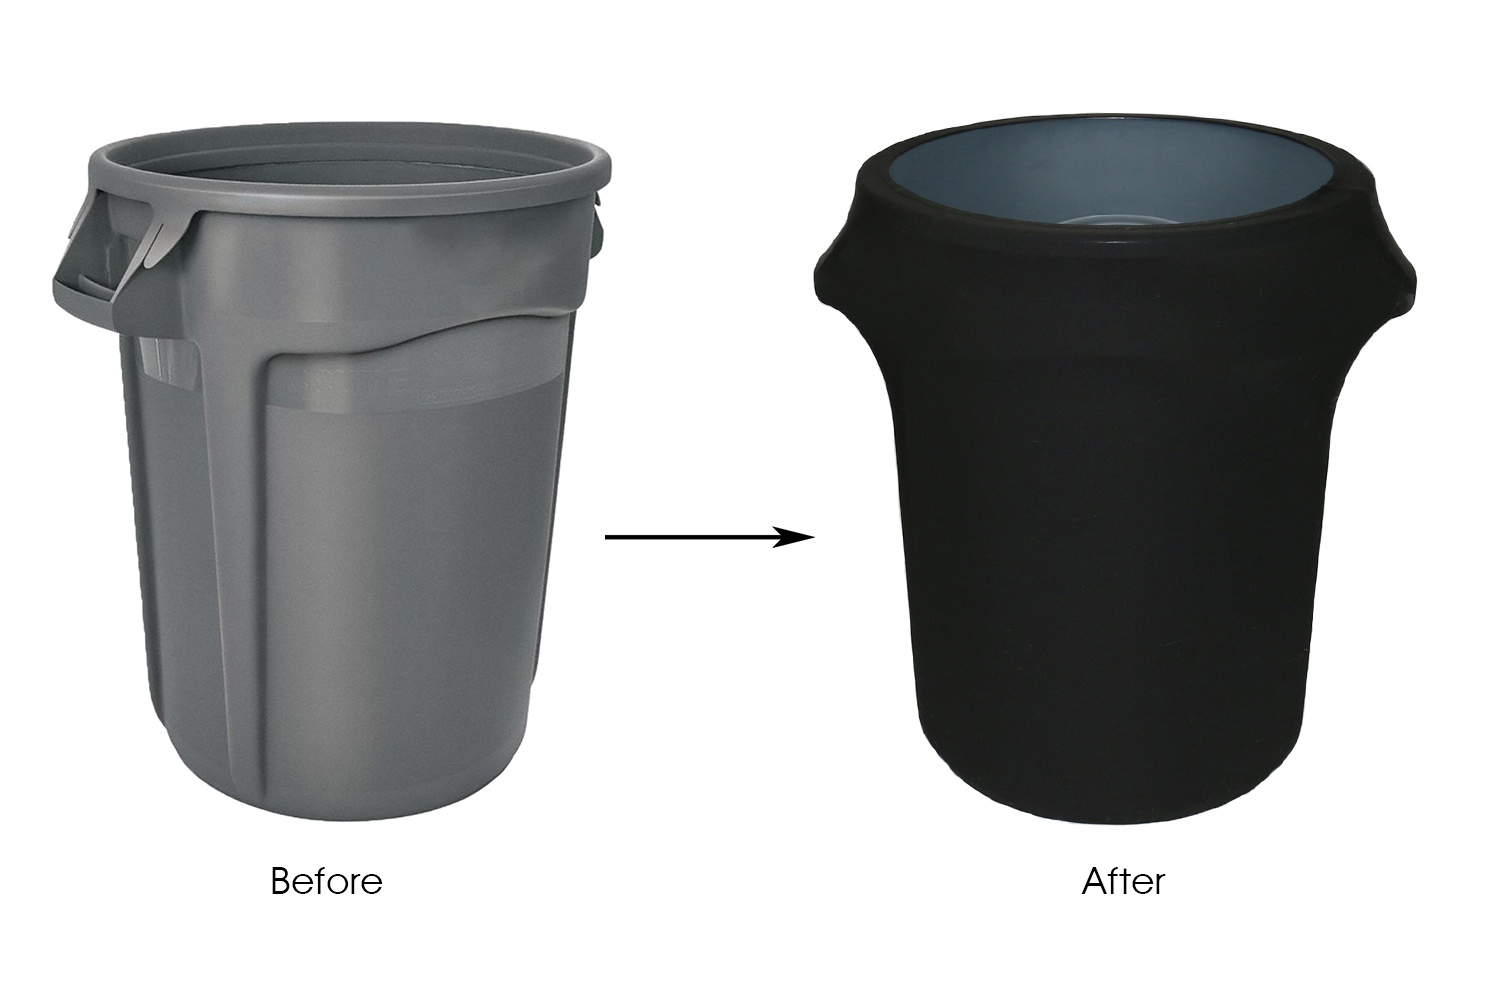 spandex-trash-can-covers-before-and-after.jpg